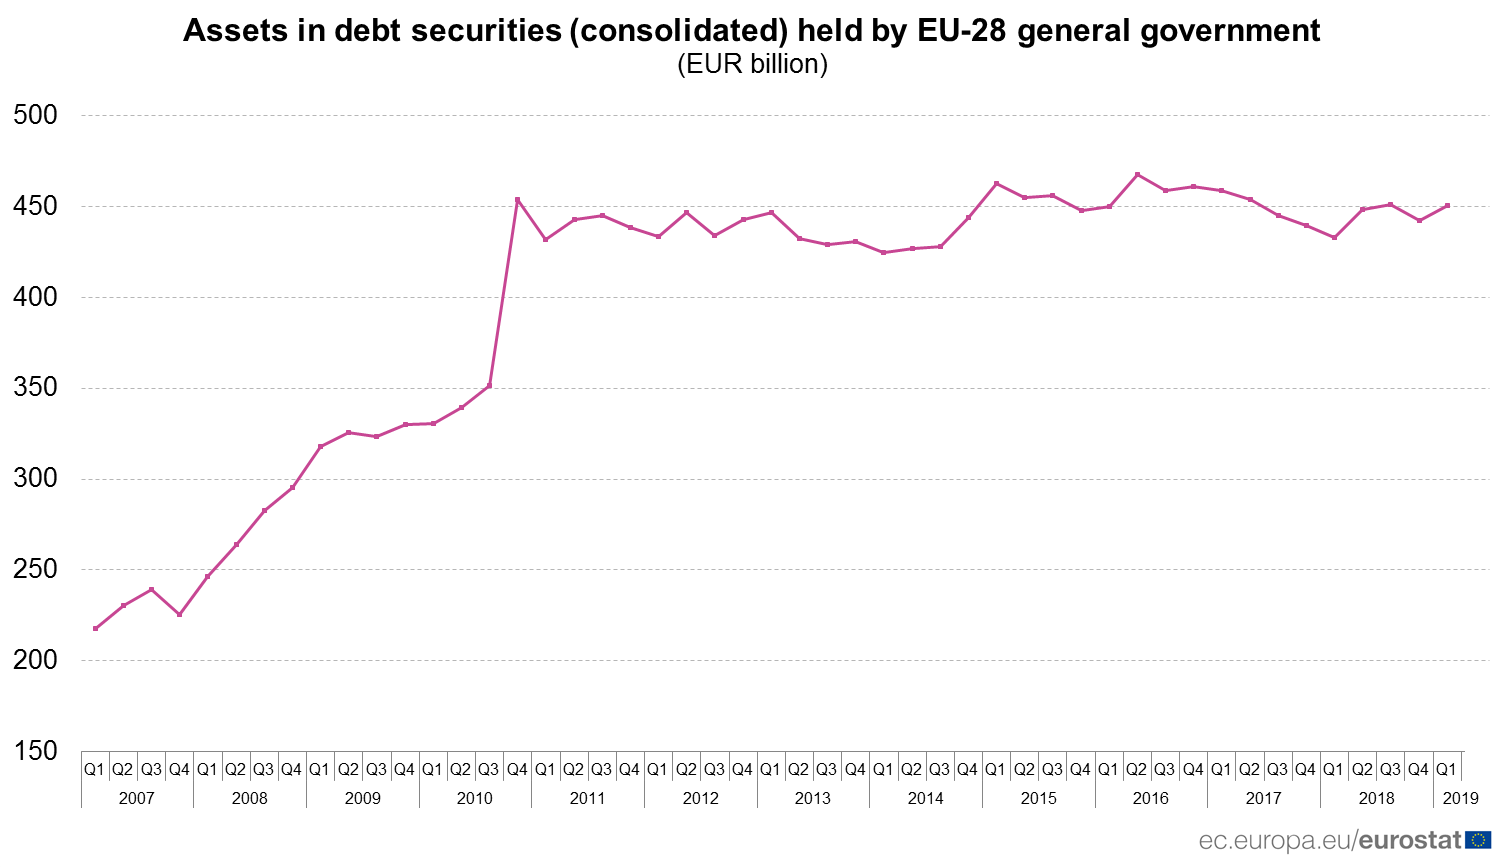 Time series of assests in debt securities held by EU-28 general governent